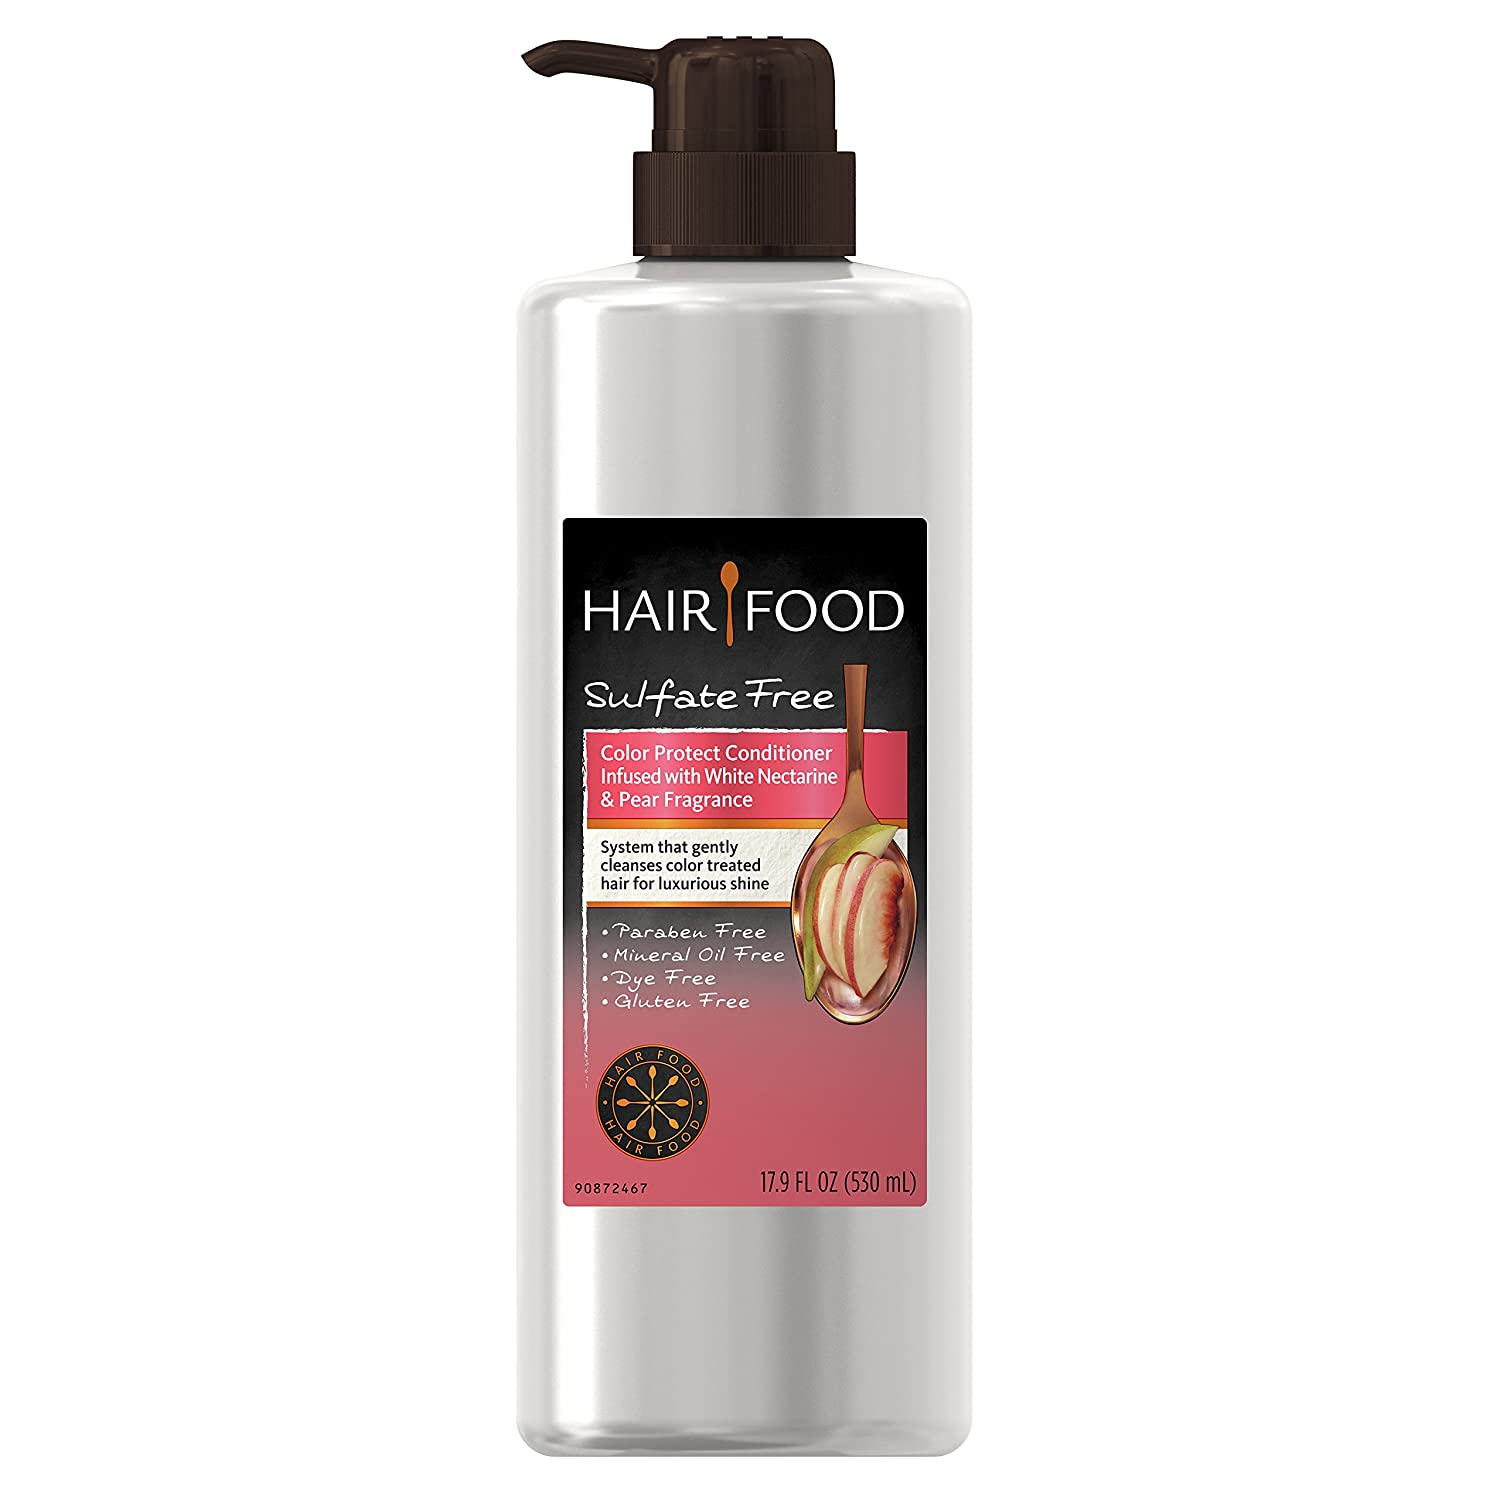 Hair Food Sulfate Free Color Protect Conditioner with White Nectarine & Pear Fragrance, 17.9 Fluid Ounce (Pack of 9)